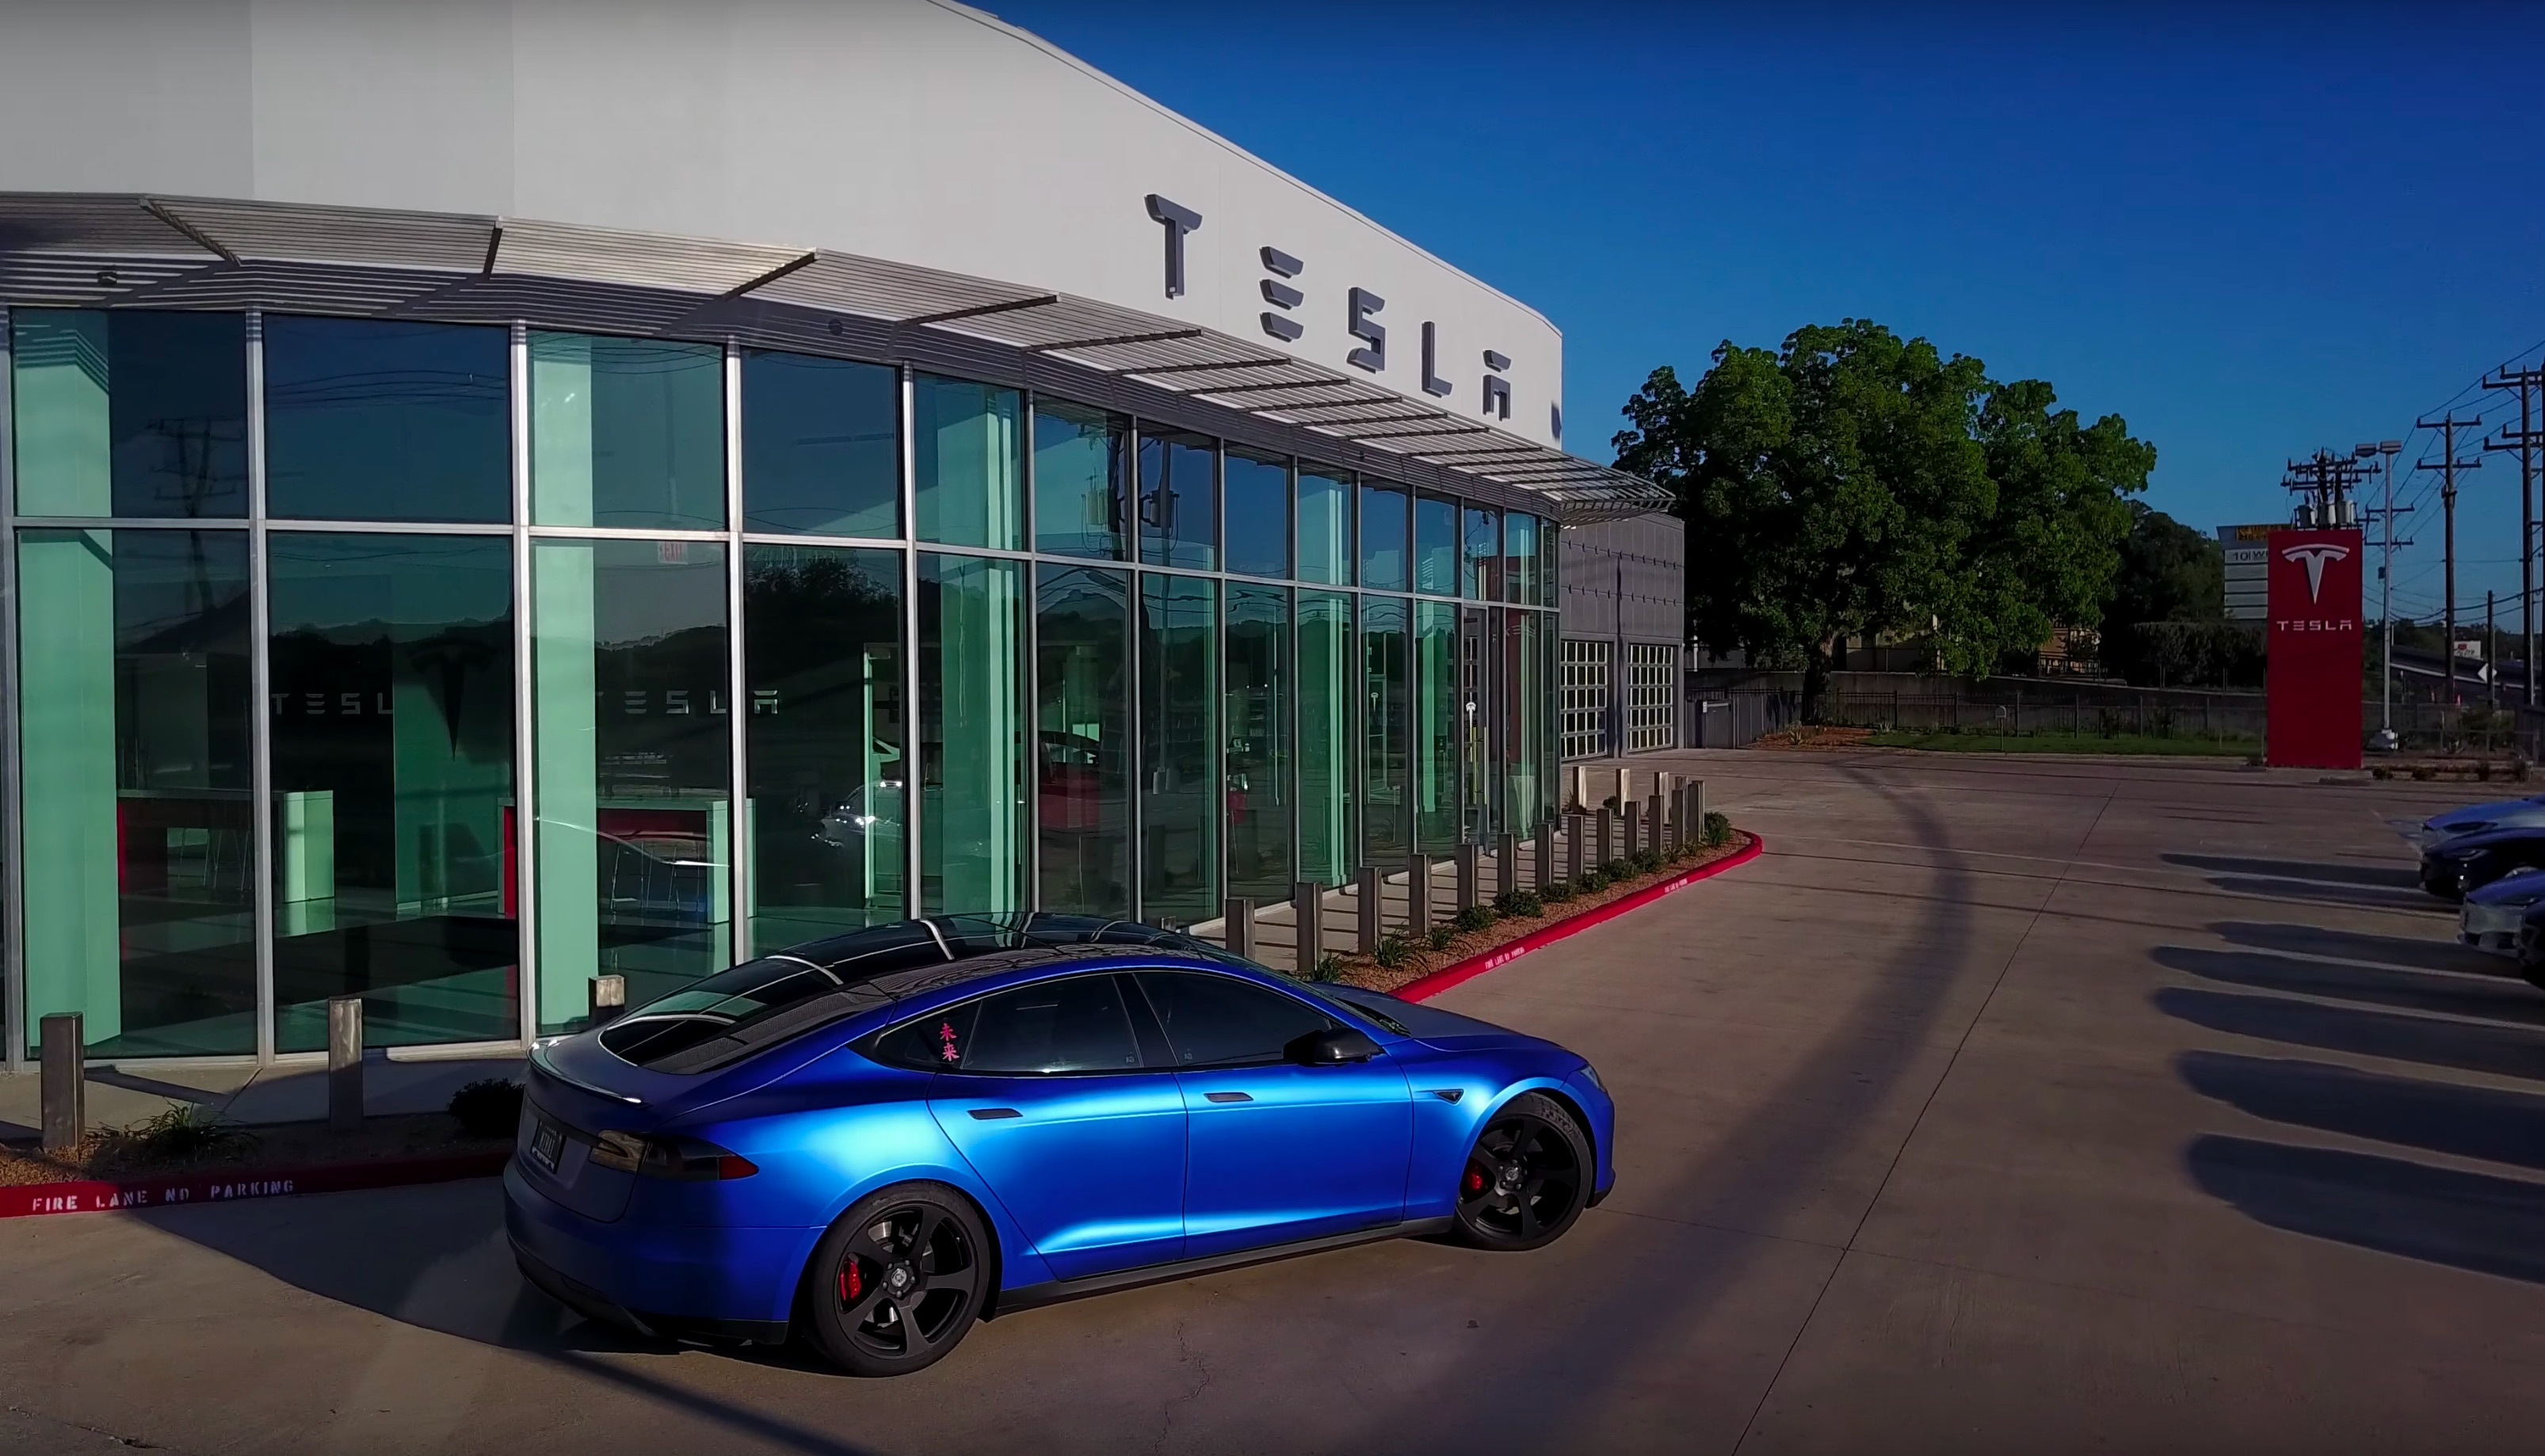 Tesla-San-Antonio-Gallery-Service-Center-Blue-Model-S